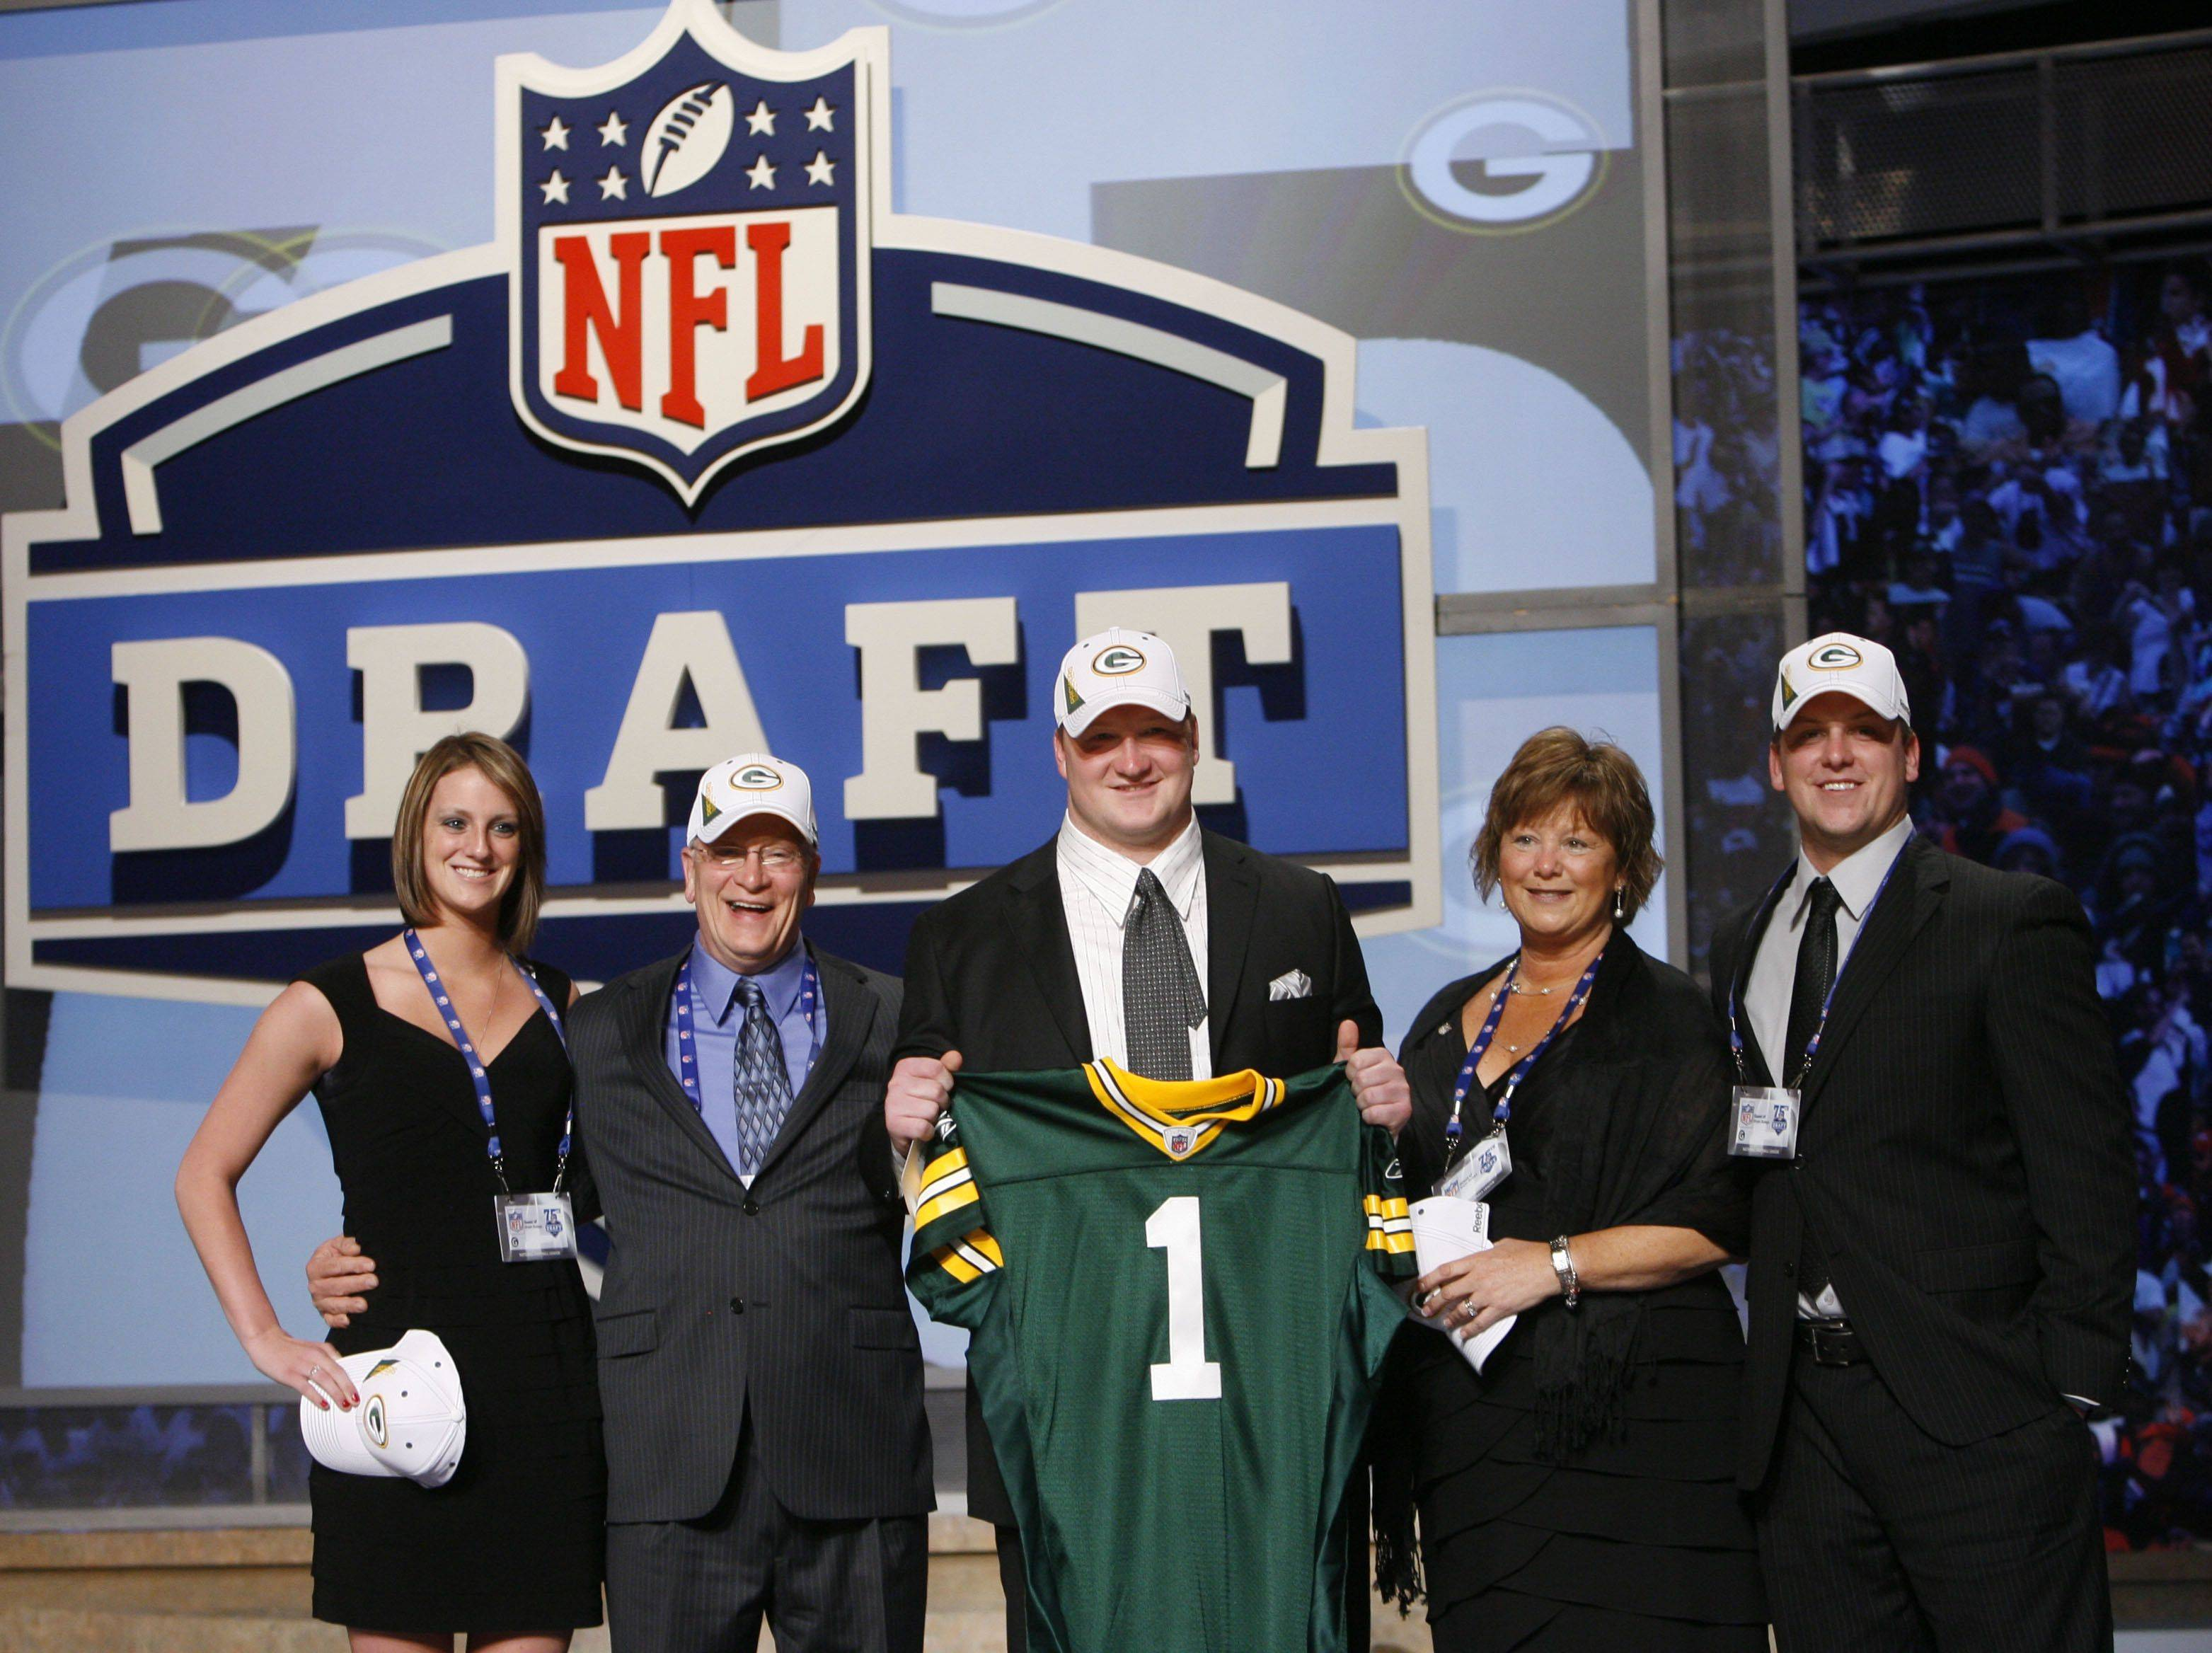 Crystal Lake native Bryan Bulaga, surrounded by loved ones, holds up his Green Bay Packers jersey after the Packers picked him in the first round of the NFL draft at Radio City Music Hall on April 22, 2010, in New York.